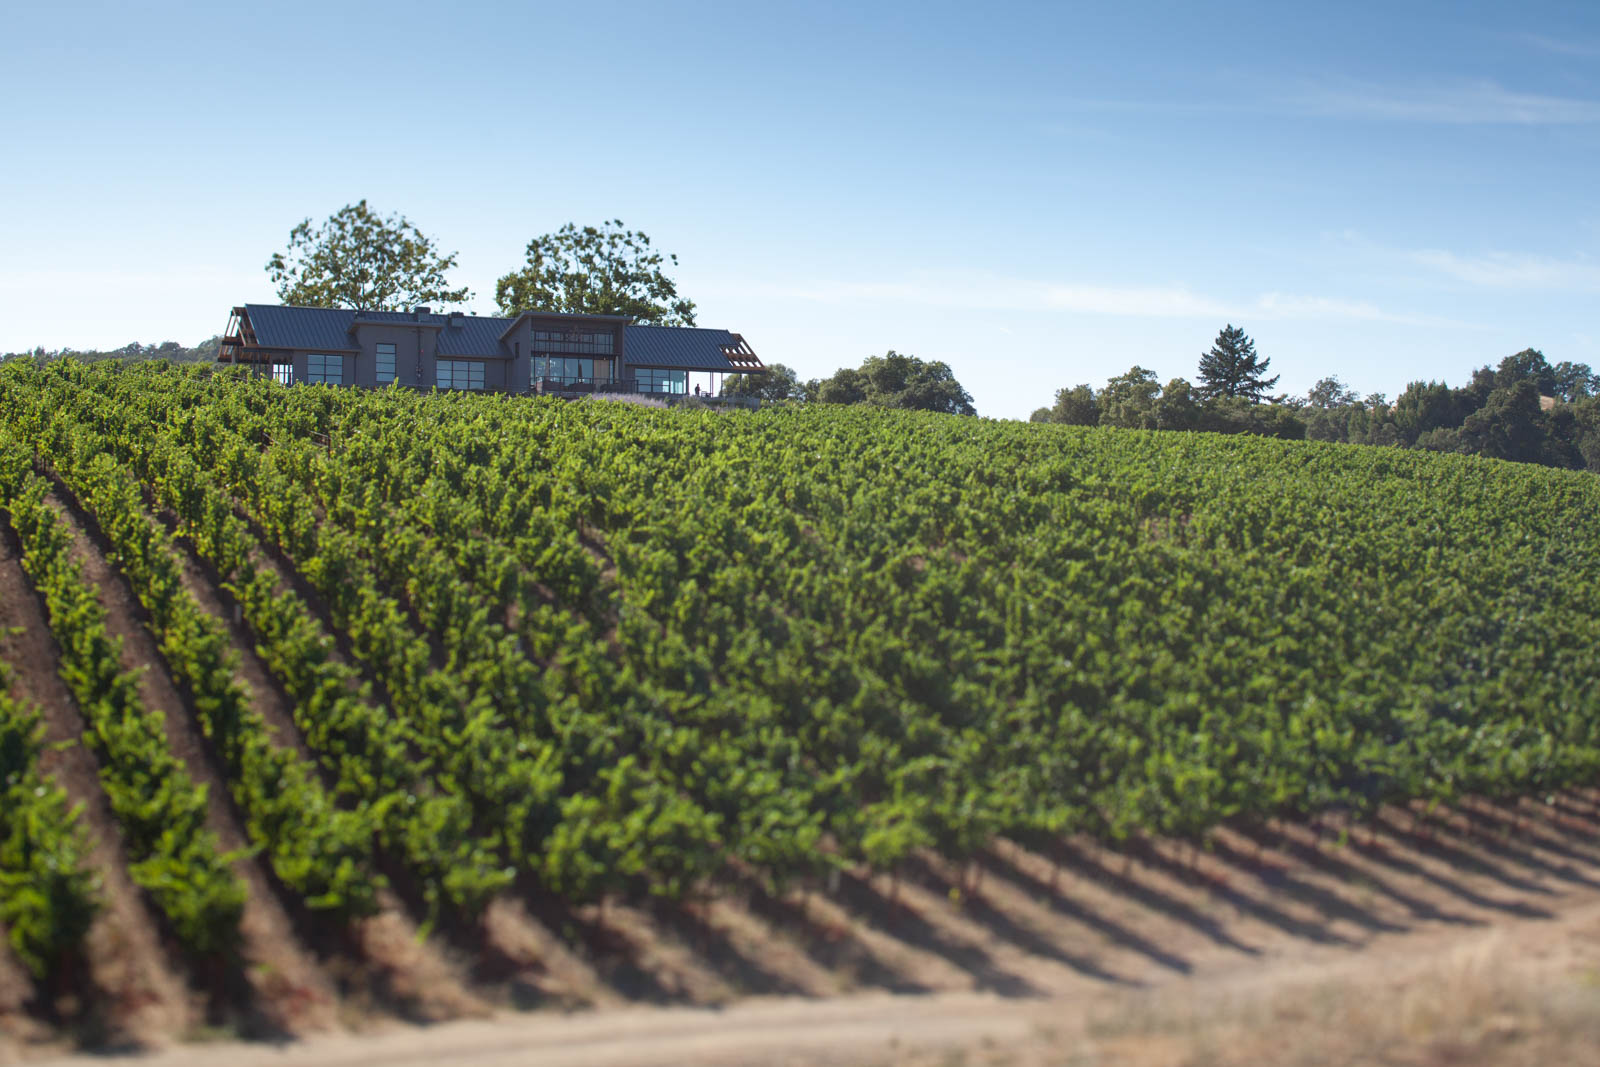 The MacRostie Winery & Tasting Room sits perched on a hill in Thale's Vineyard. ©Kevin Day / Opening a Bottle